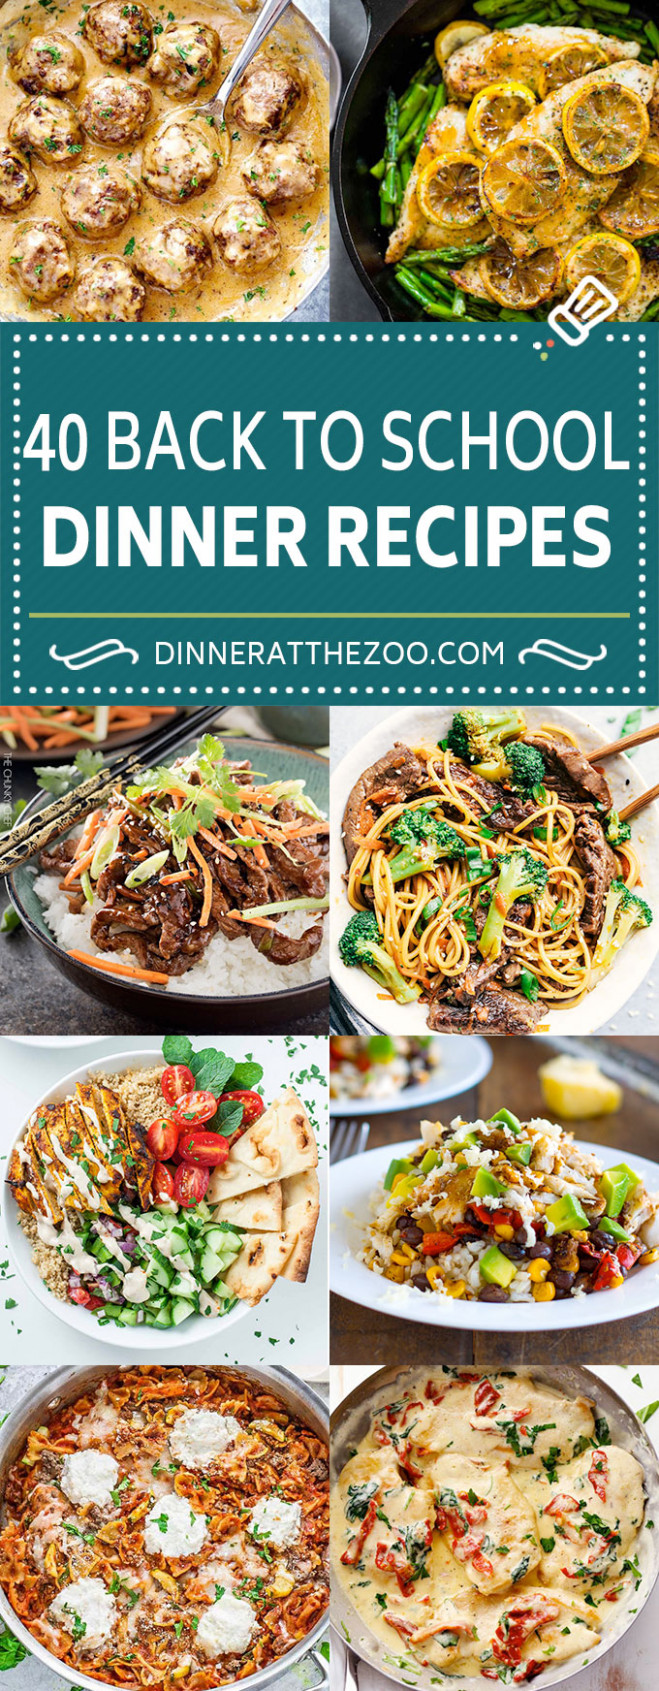 40 Back To School Recipes - Dinner At The Zoo - Dinner At The Zoo Recipes